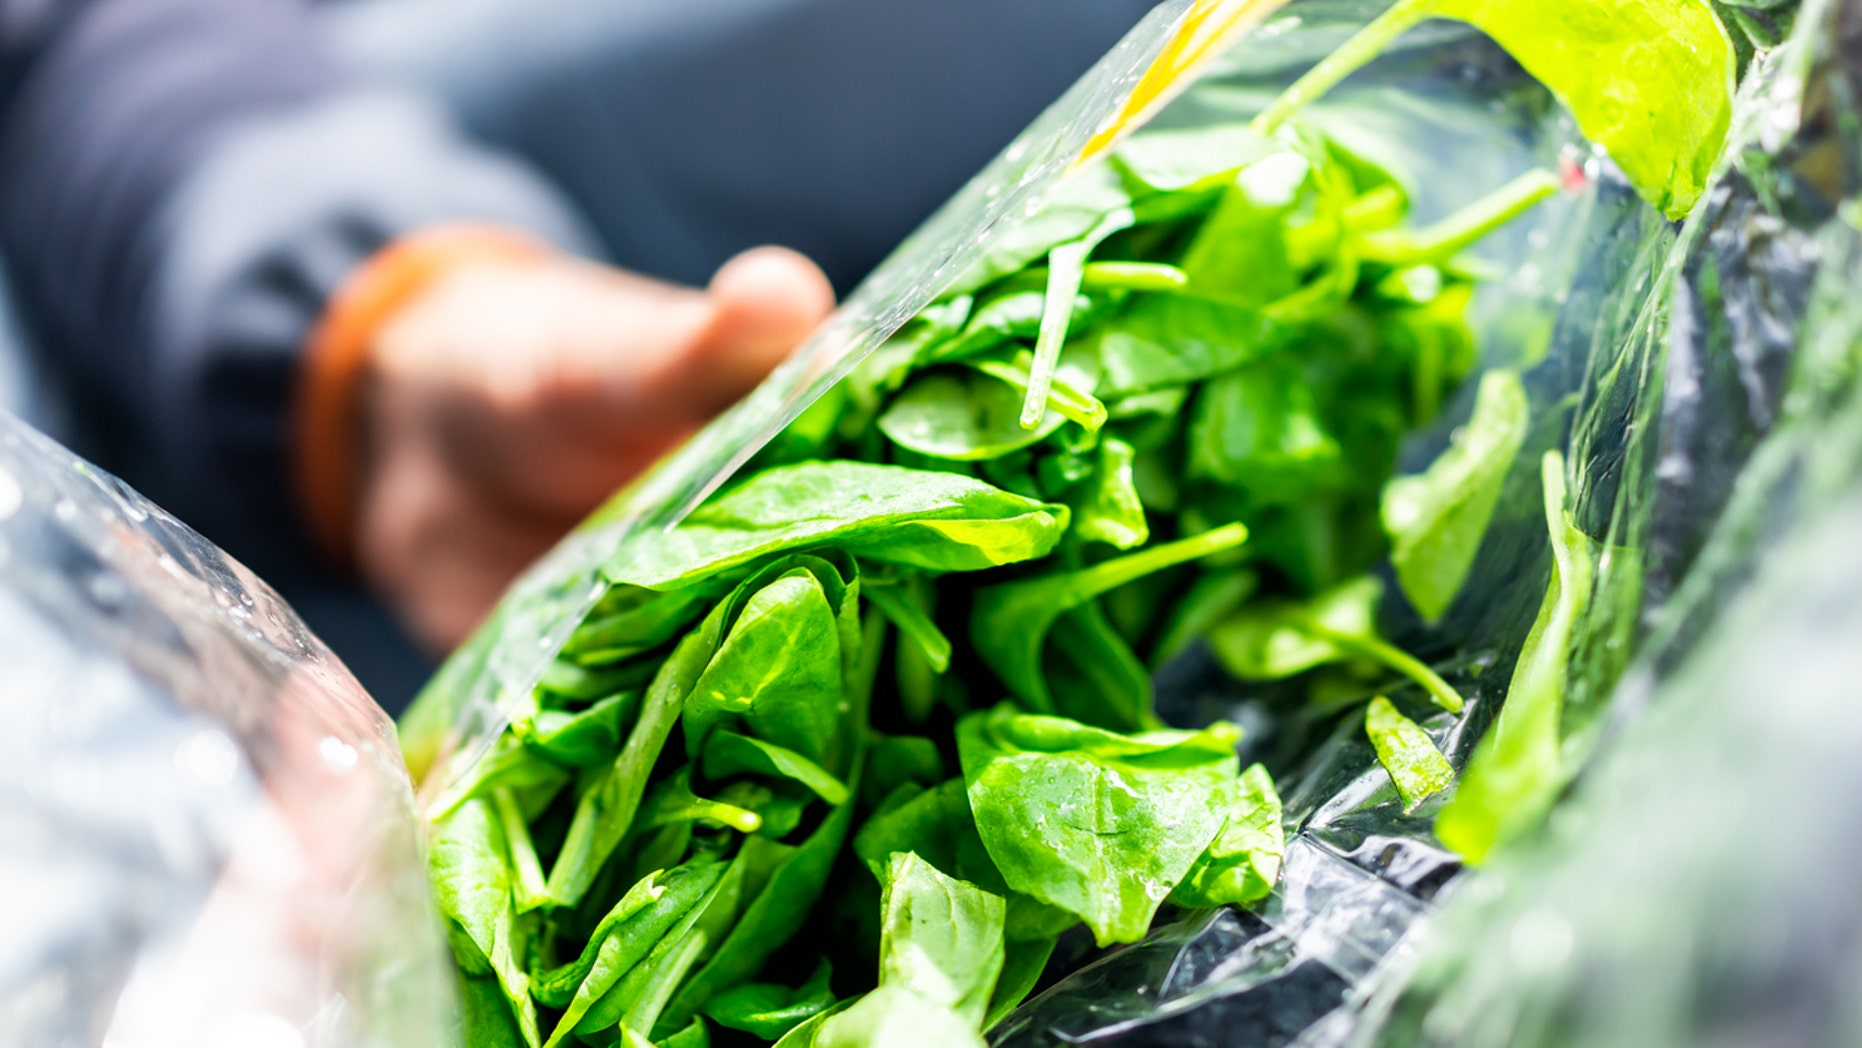 A woman was horrified by what her spinach salad contained.